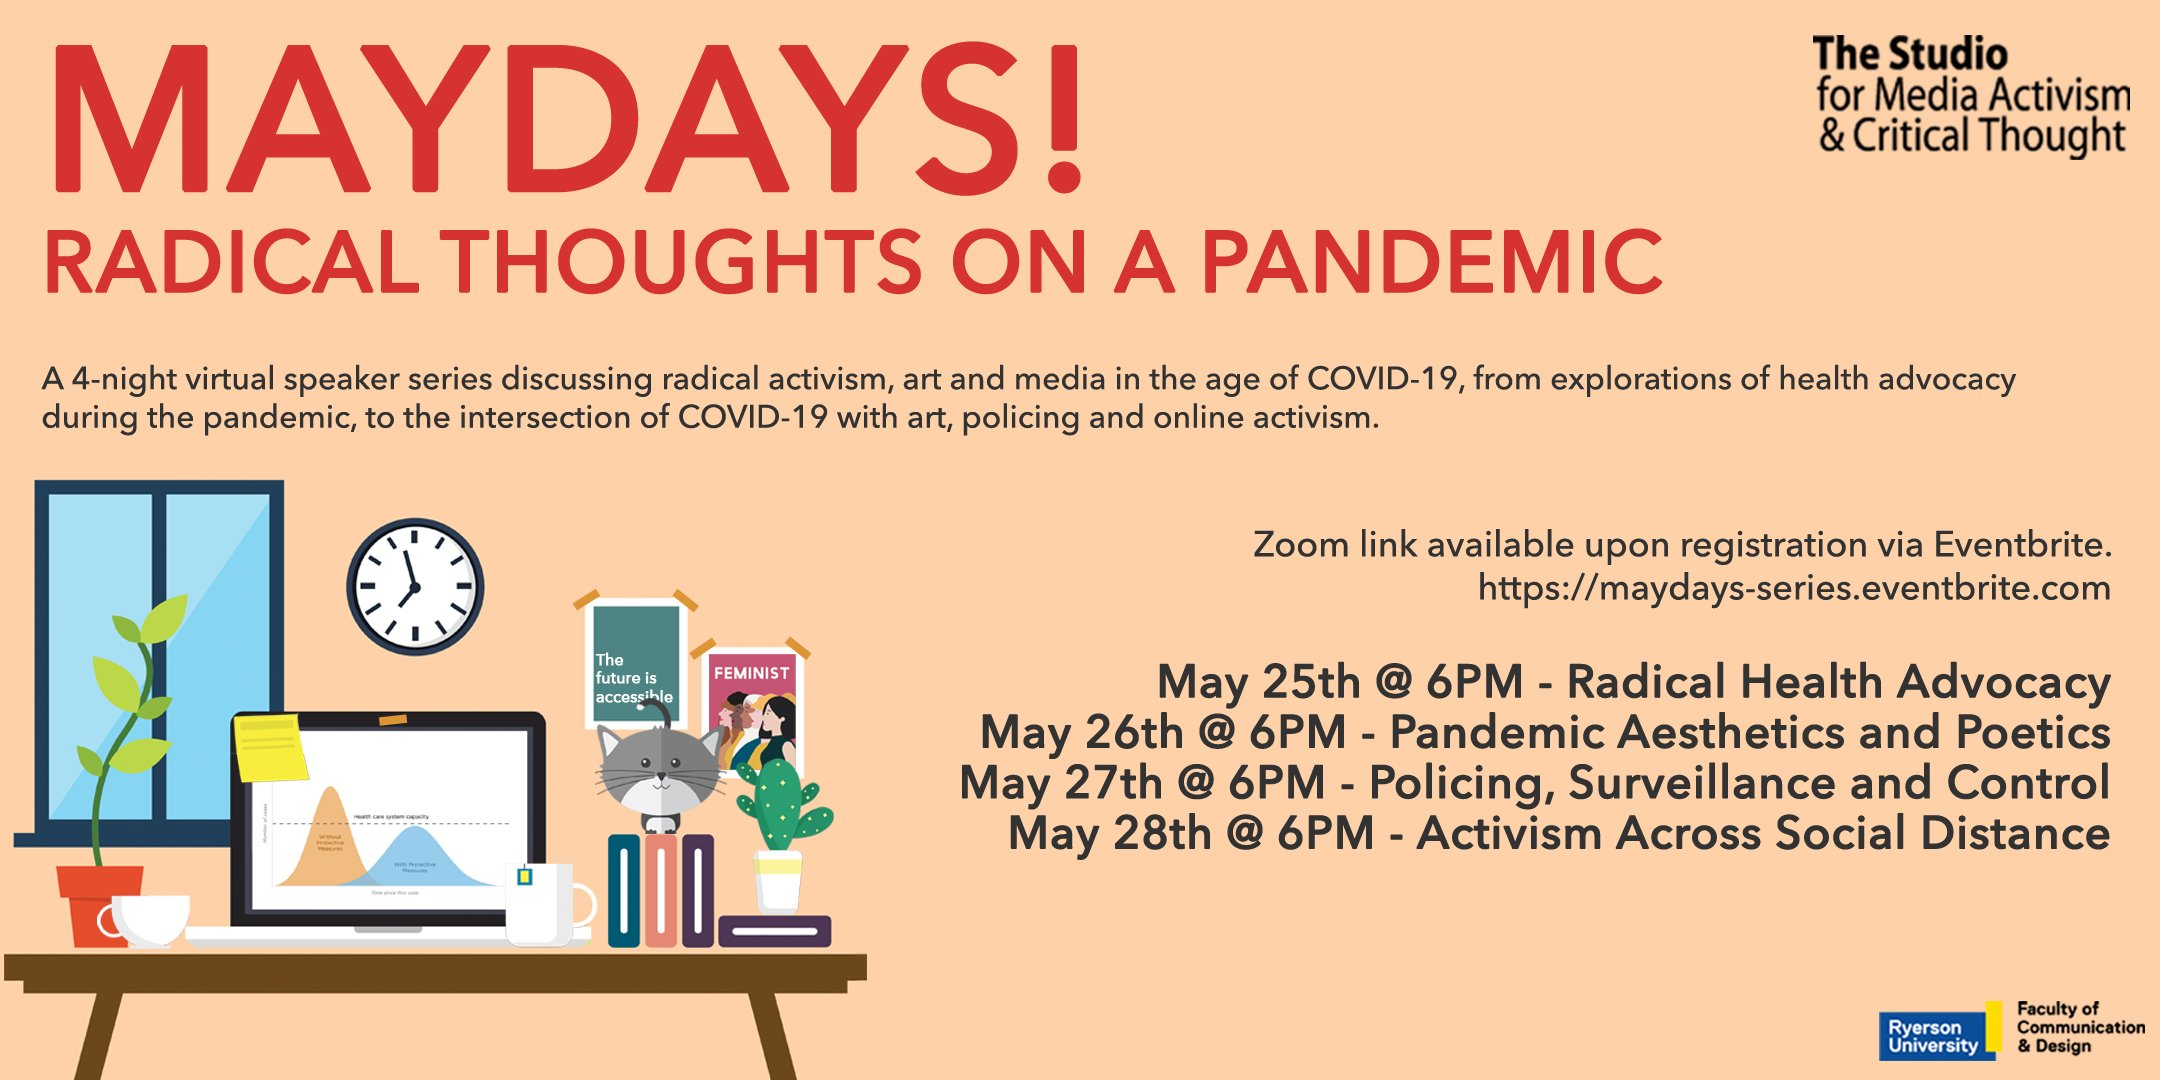 Maydays! Radical Thoughts on a Pandemic